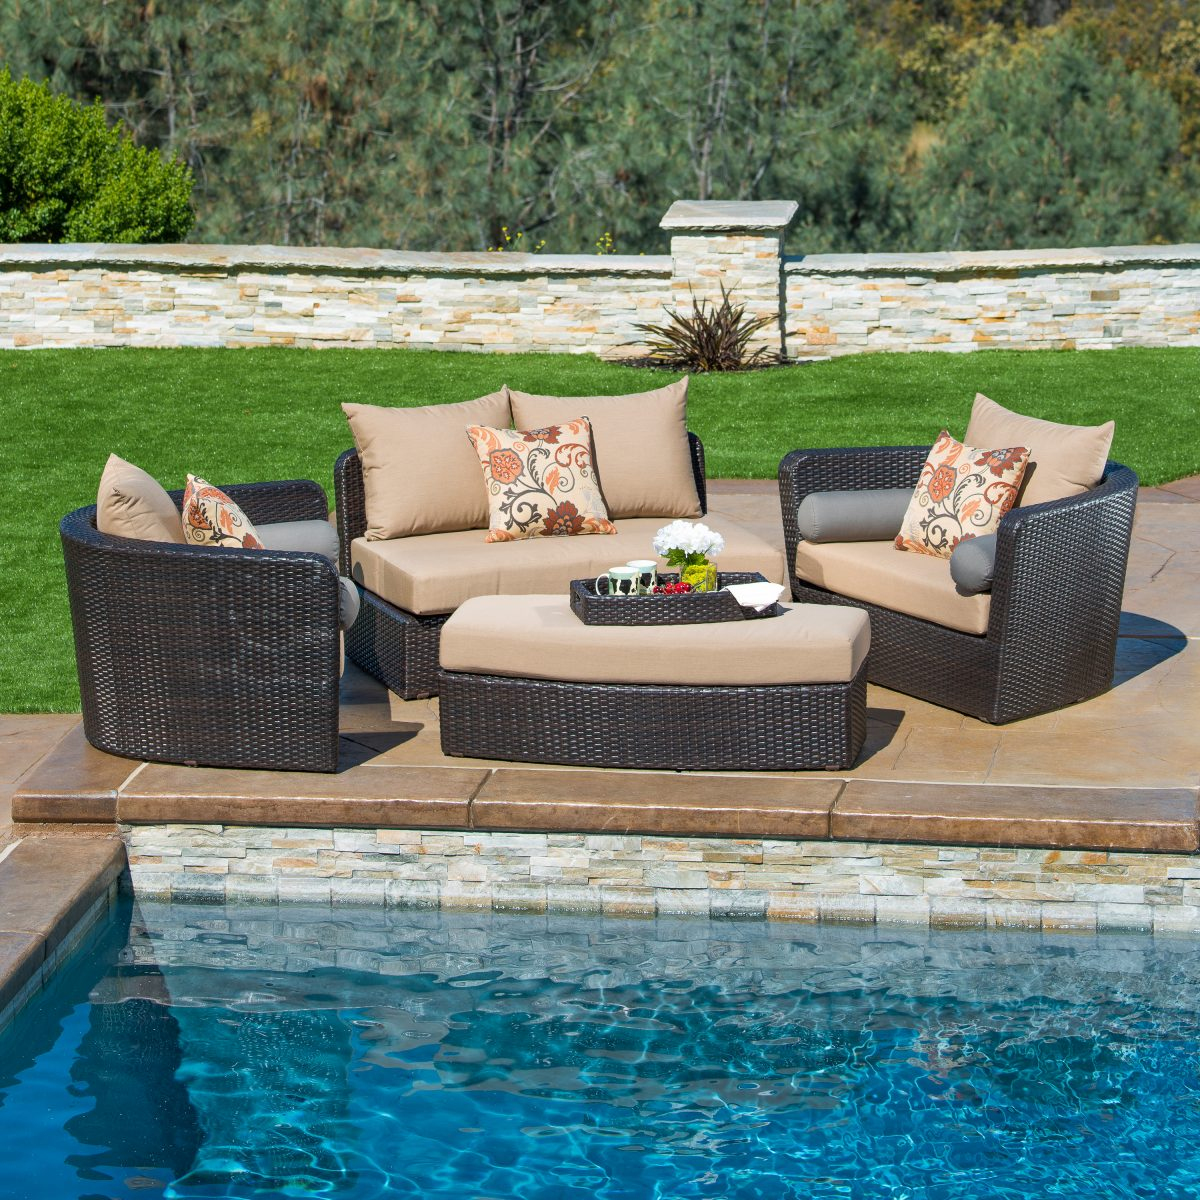 Poolside Furniture Ideas For Your Backyard Starsong